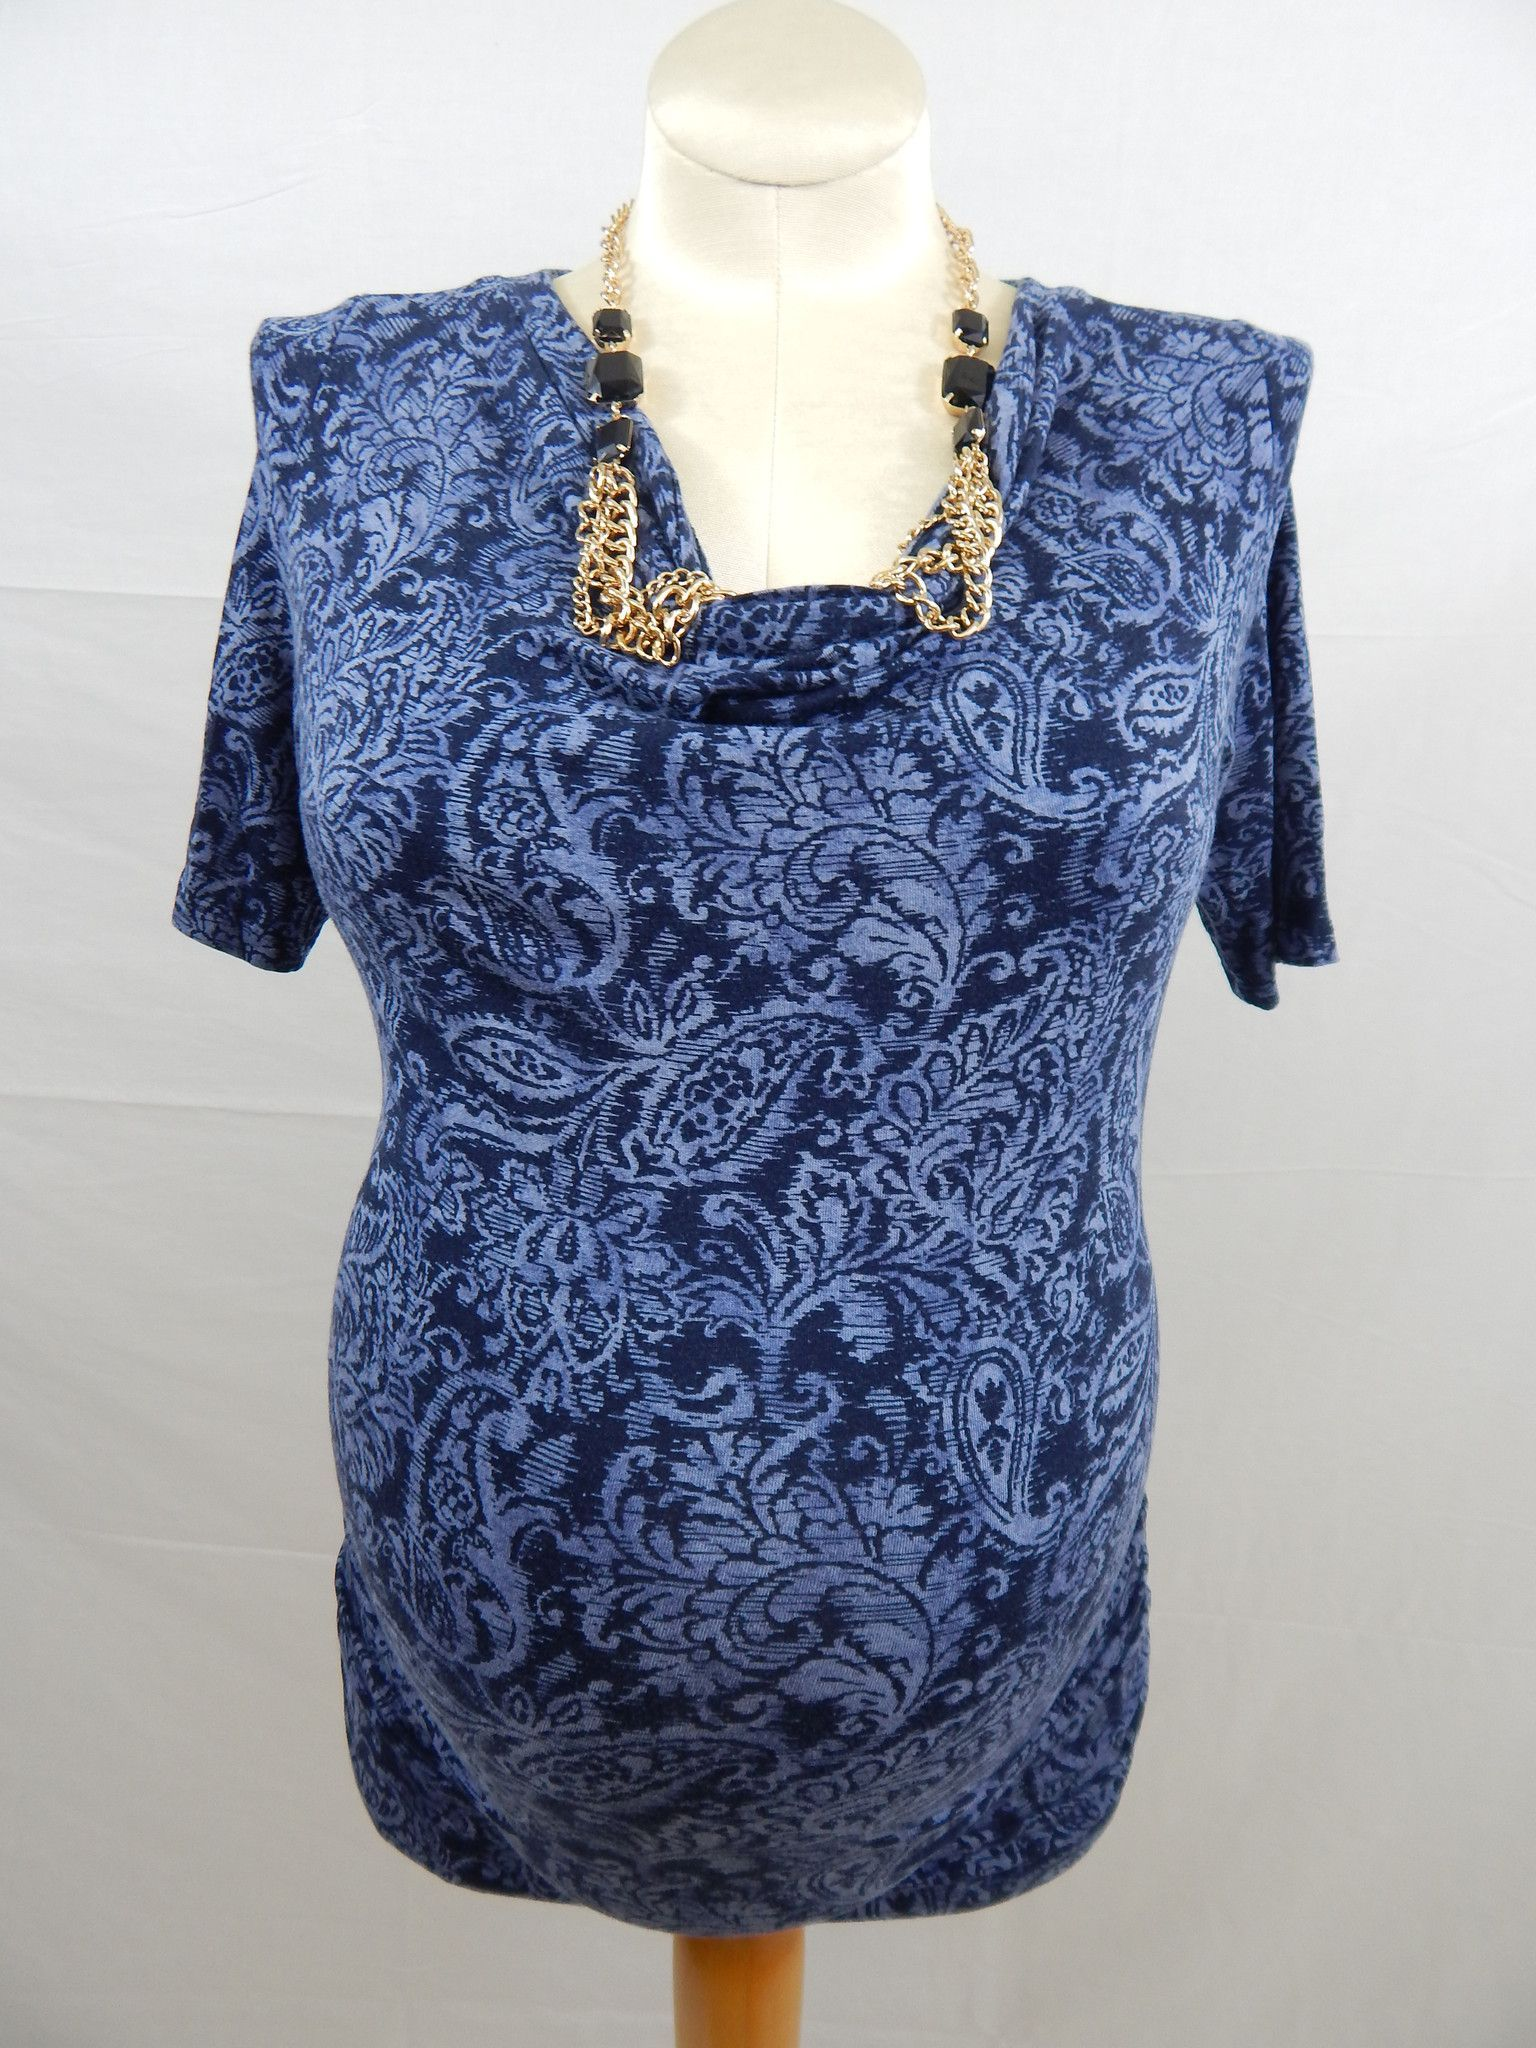 Navy 1/4 Sleeve Paisley Patterned Top-912